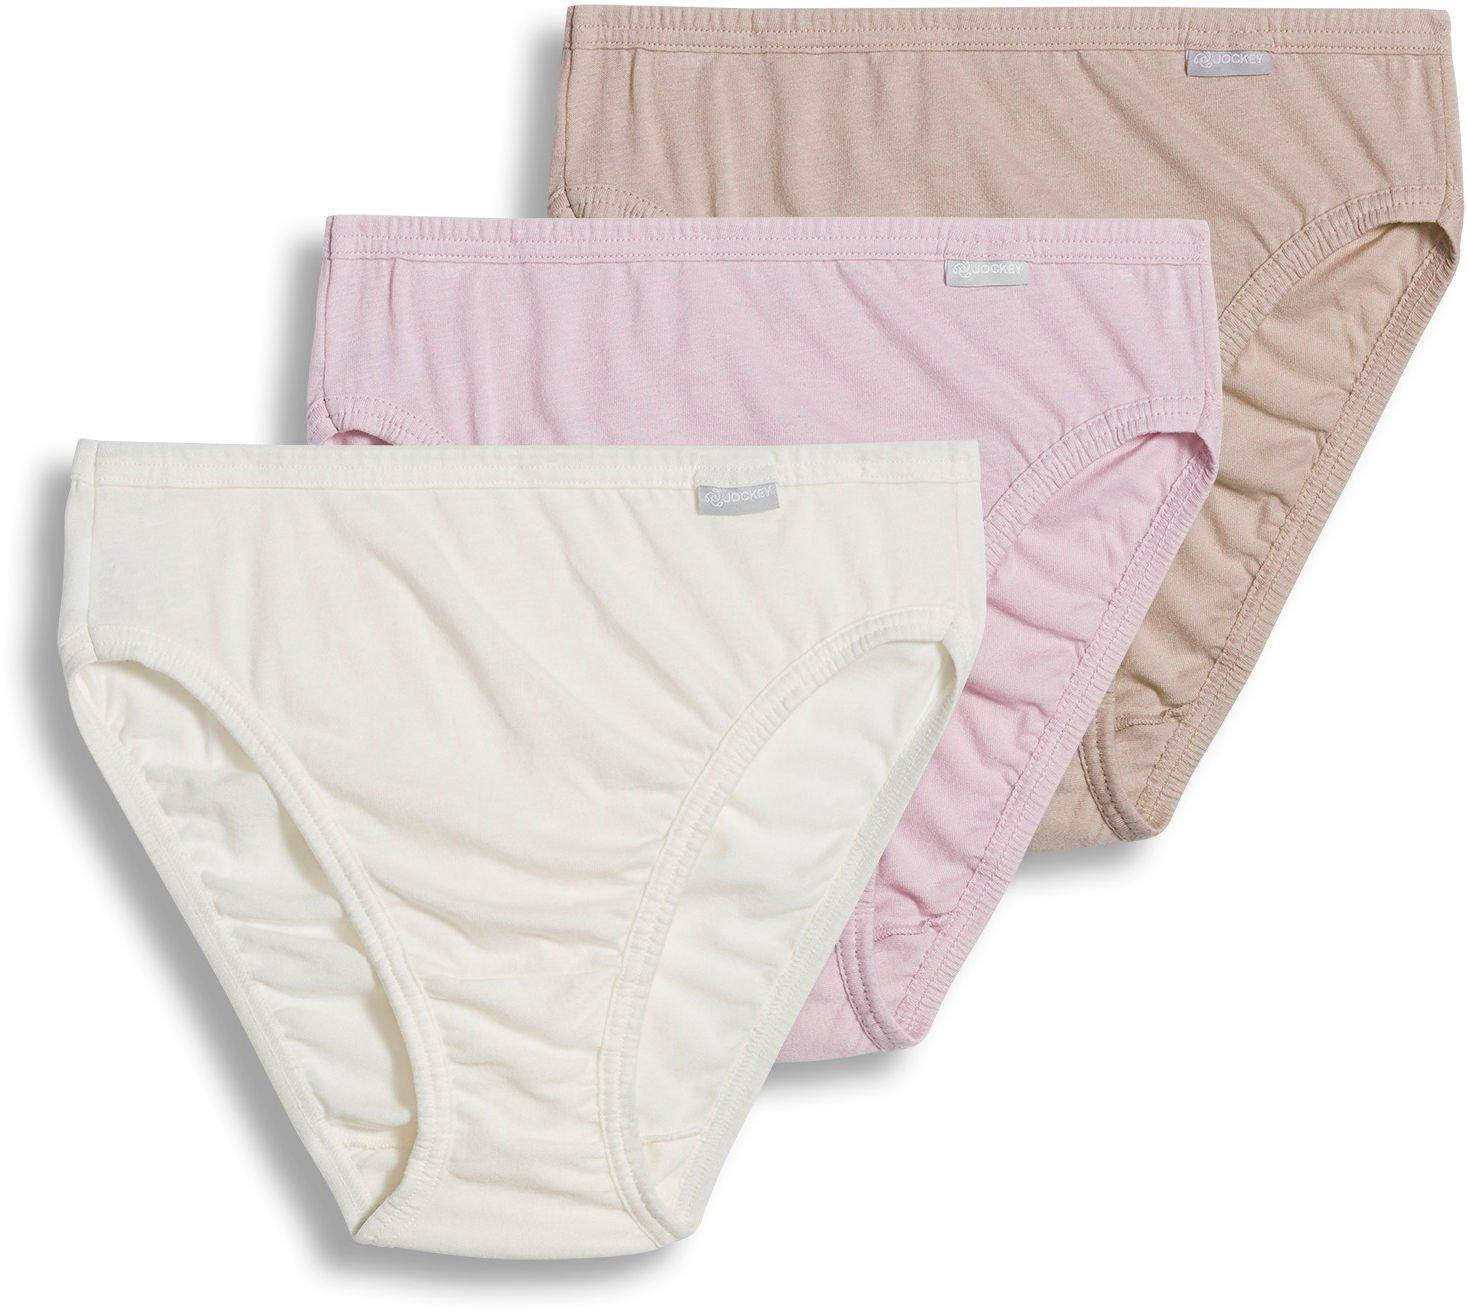 Elance french cut panties also women   underwear thongs bealls florida rh beallsflorida